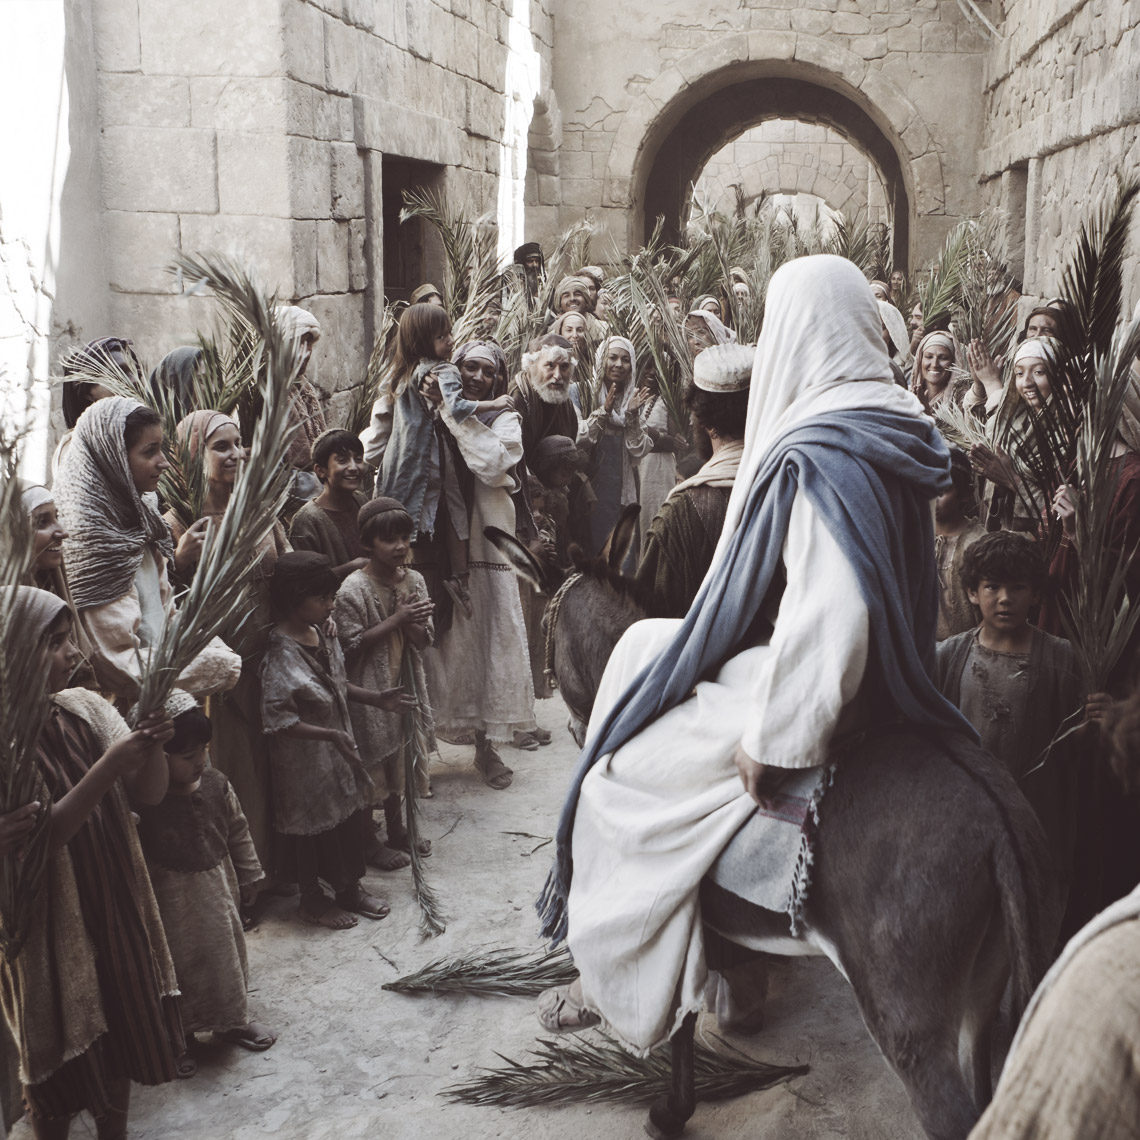 The Triumphal Entry (Palm Sunday) — The Church of Joy